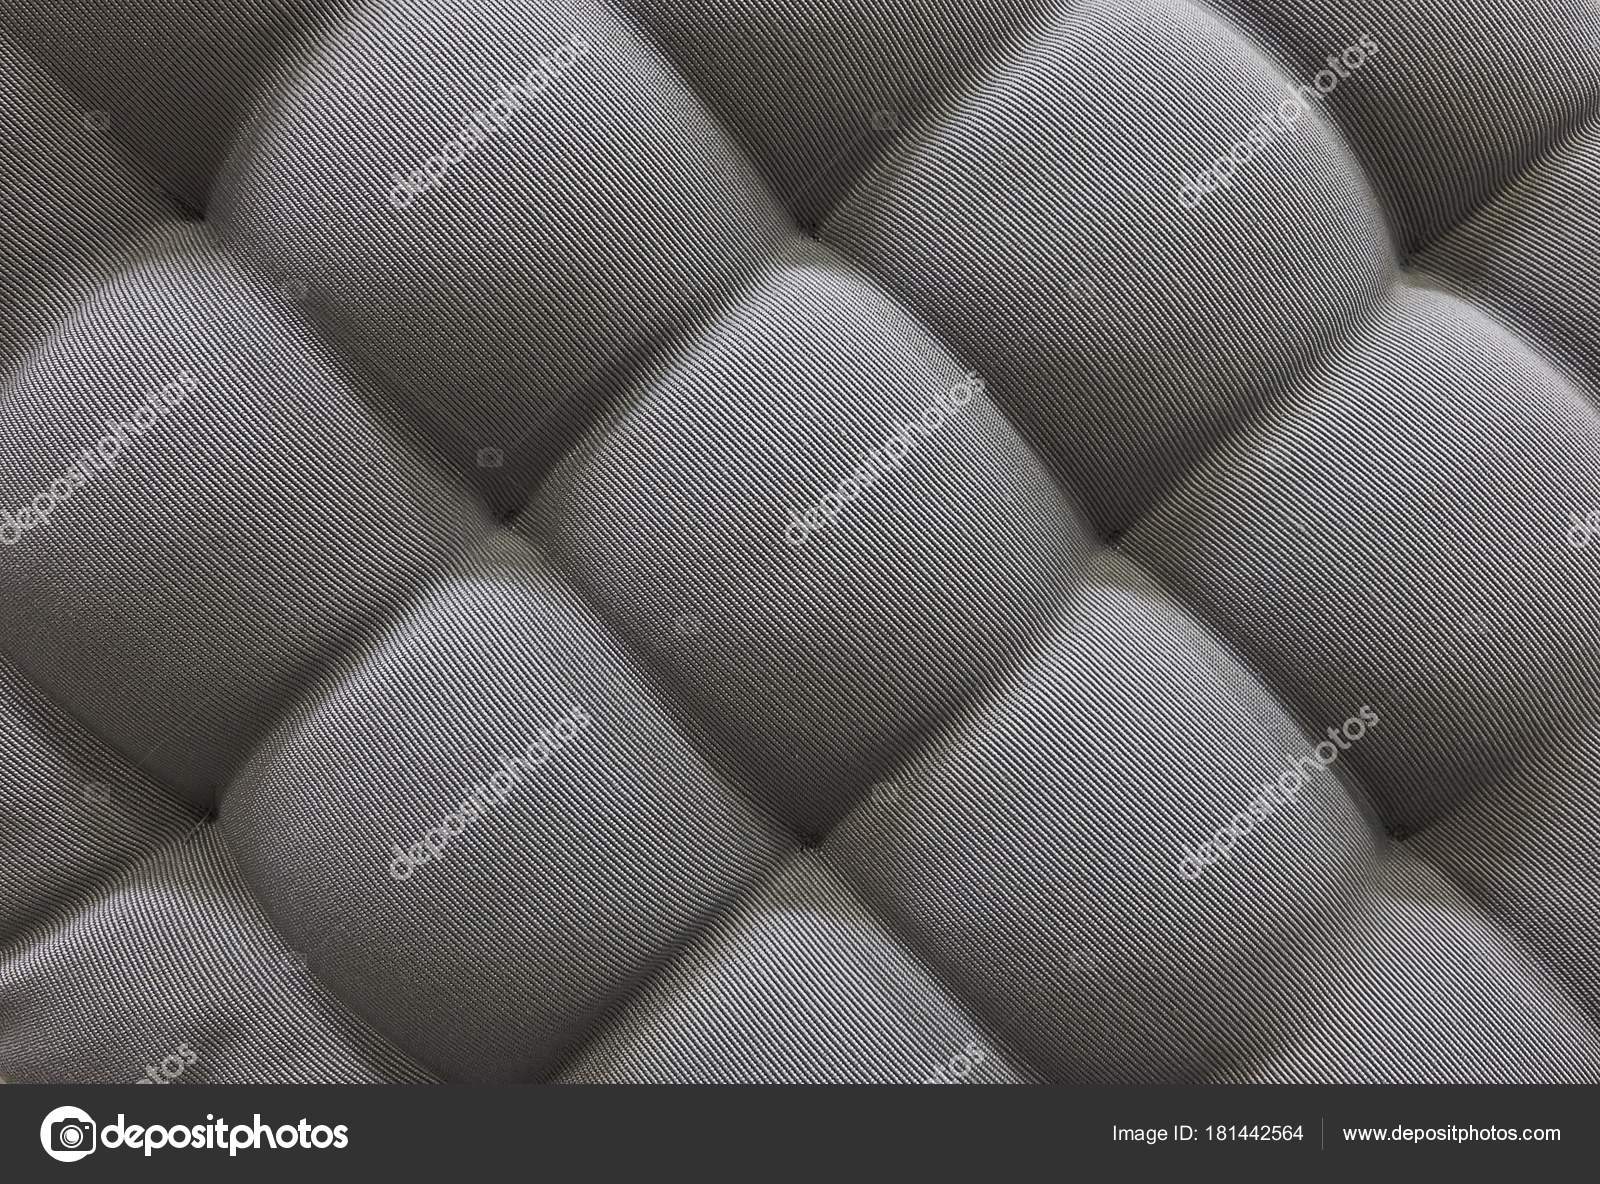 Background Pattern Closed Abstract Texture Gray Fabric Sofa Upholstery Stock Photo